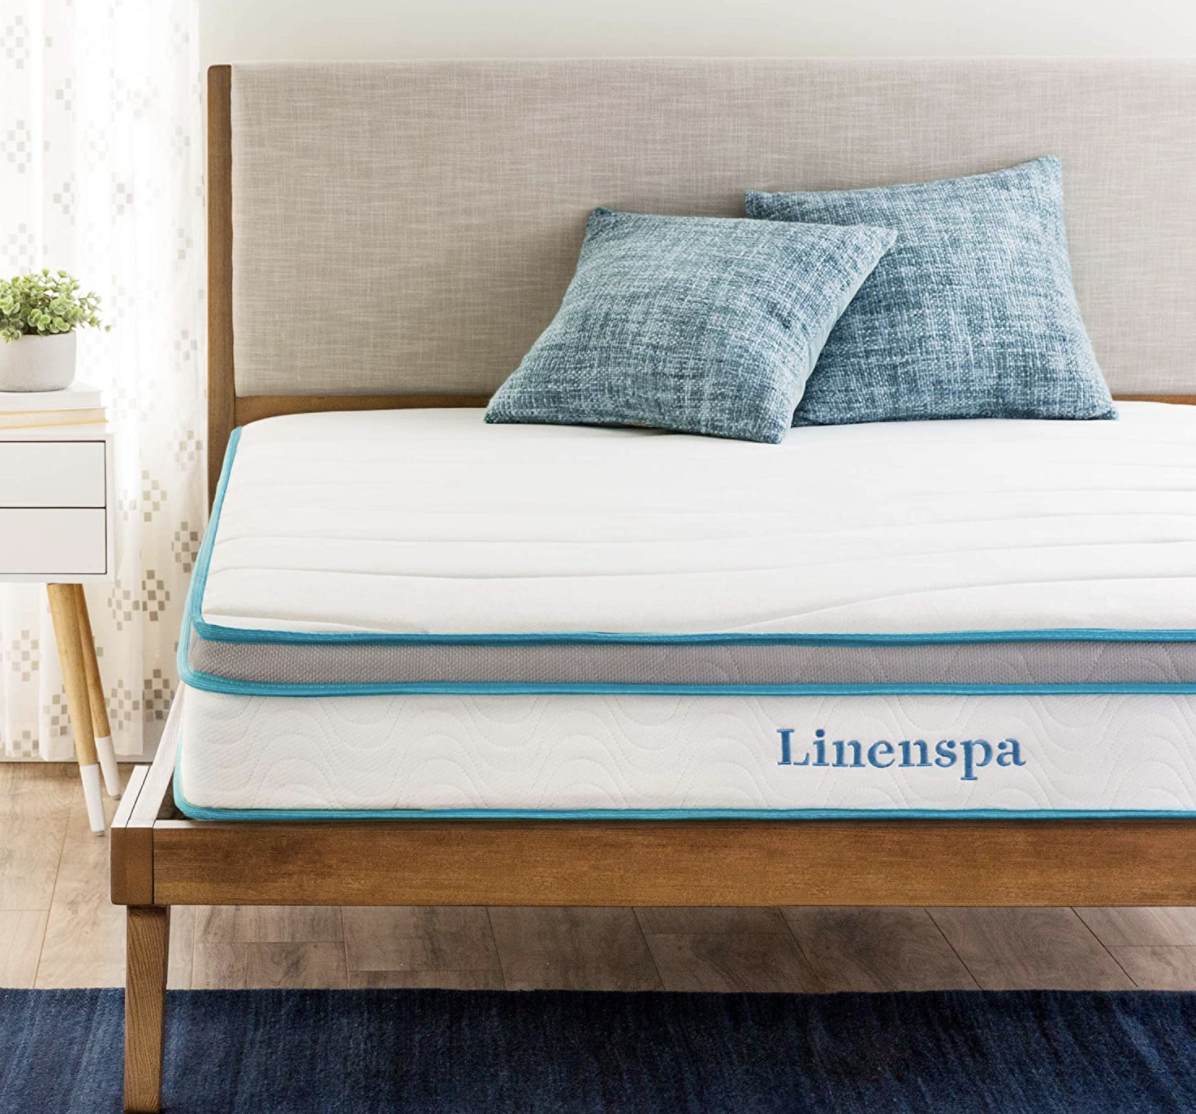 Sleep is the easiest (and laziest) way to take good care of yourself. A great mattress is step one. (Photo: Amazon)